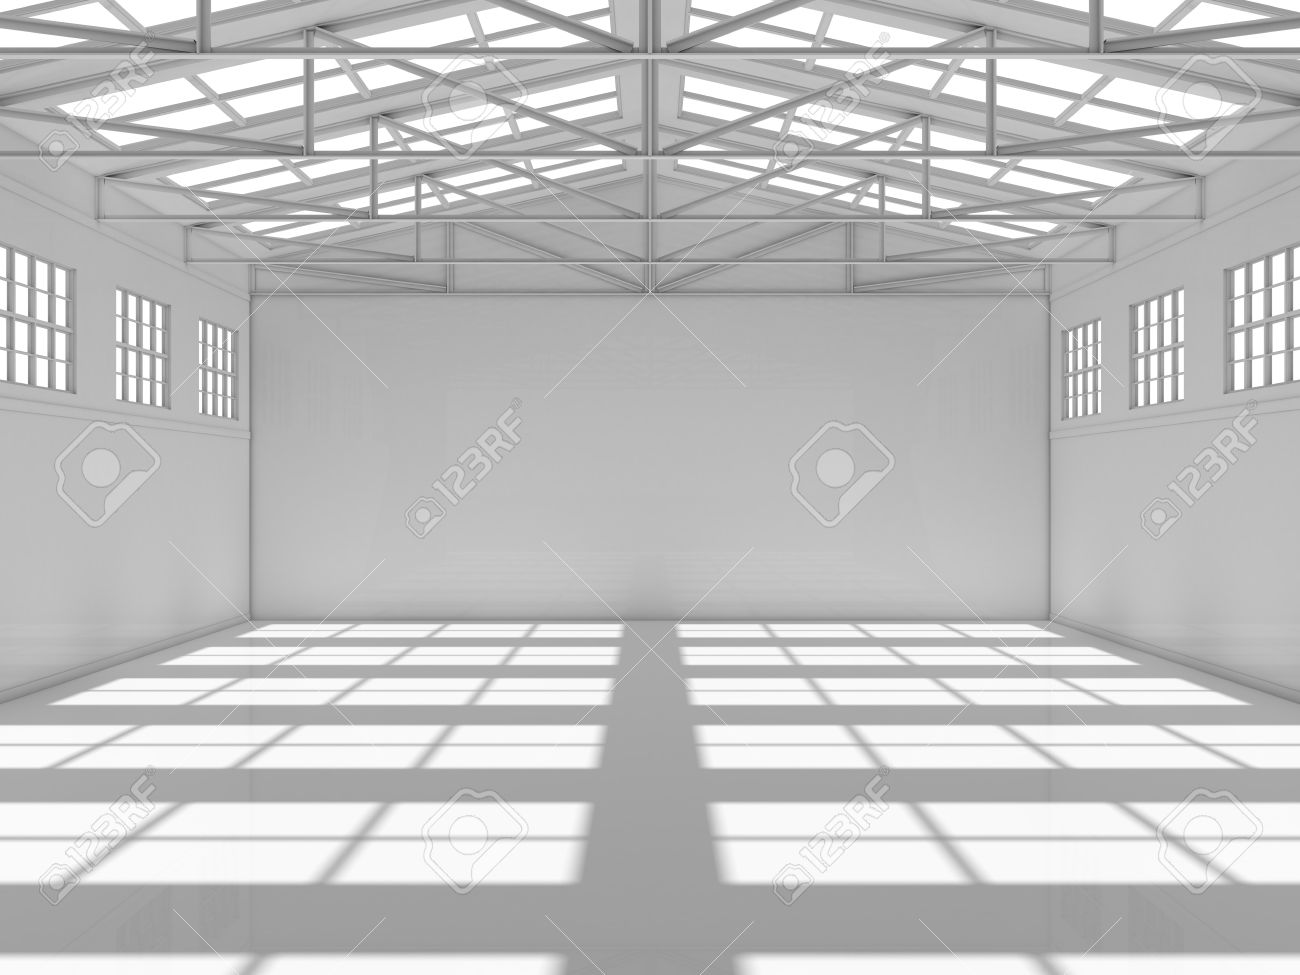 Abstract Empty White Warehouse Interior With Shadow On Floor. 3D Rendering  Stock Photo   66653718